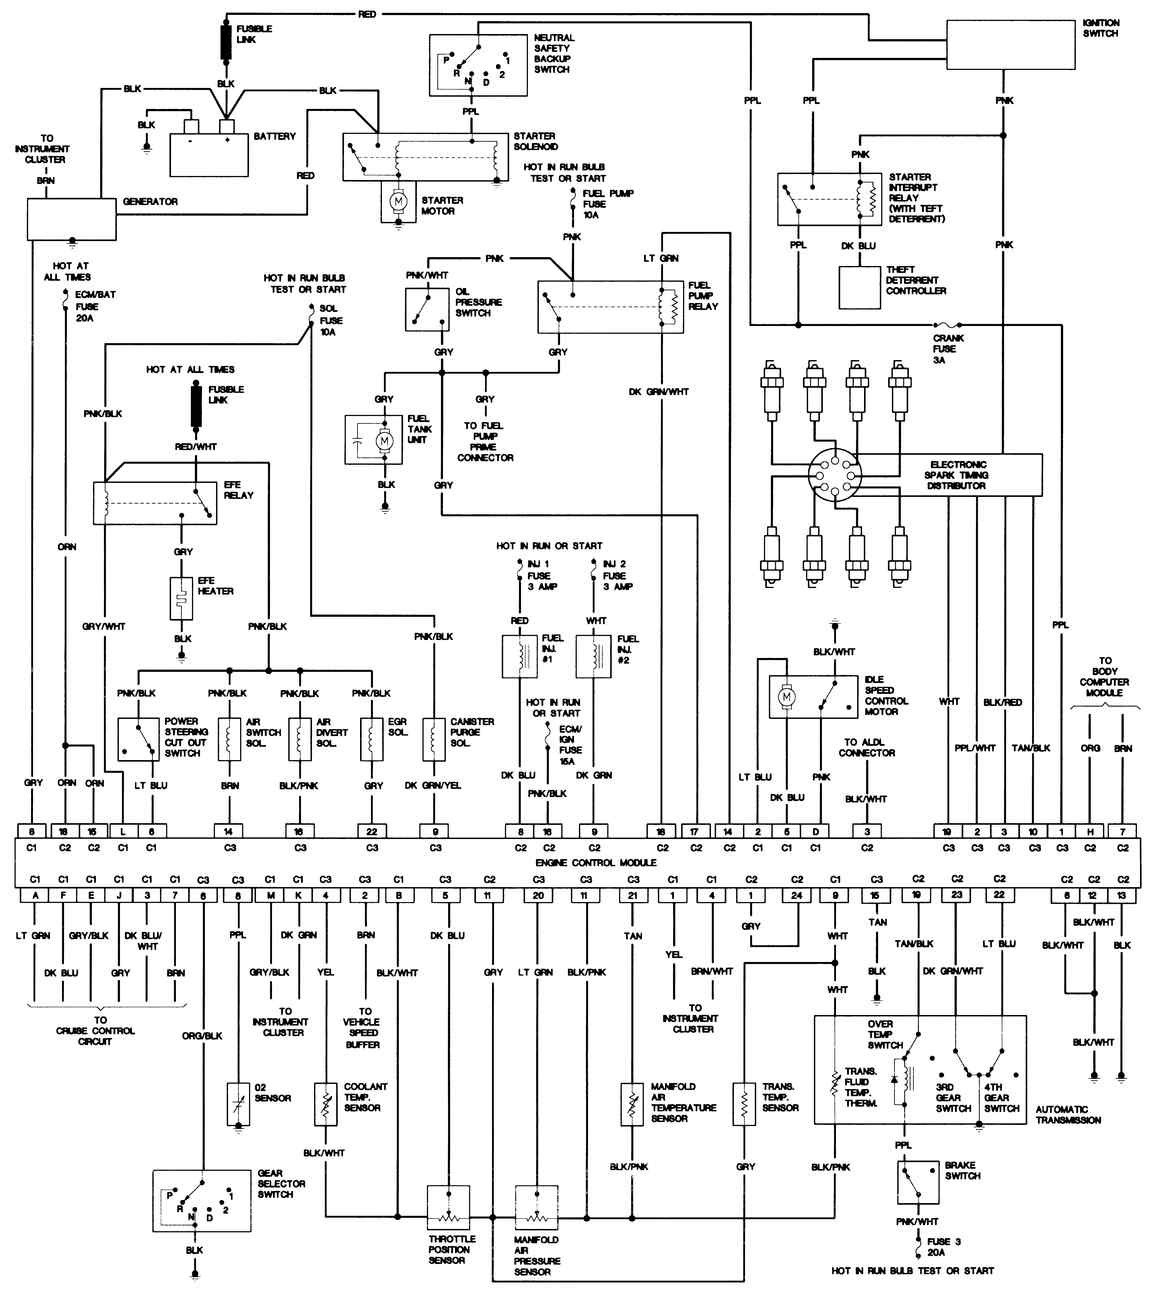 Fleetwood Wiring Diagram - Wiring Diagram Directory on